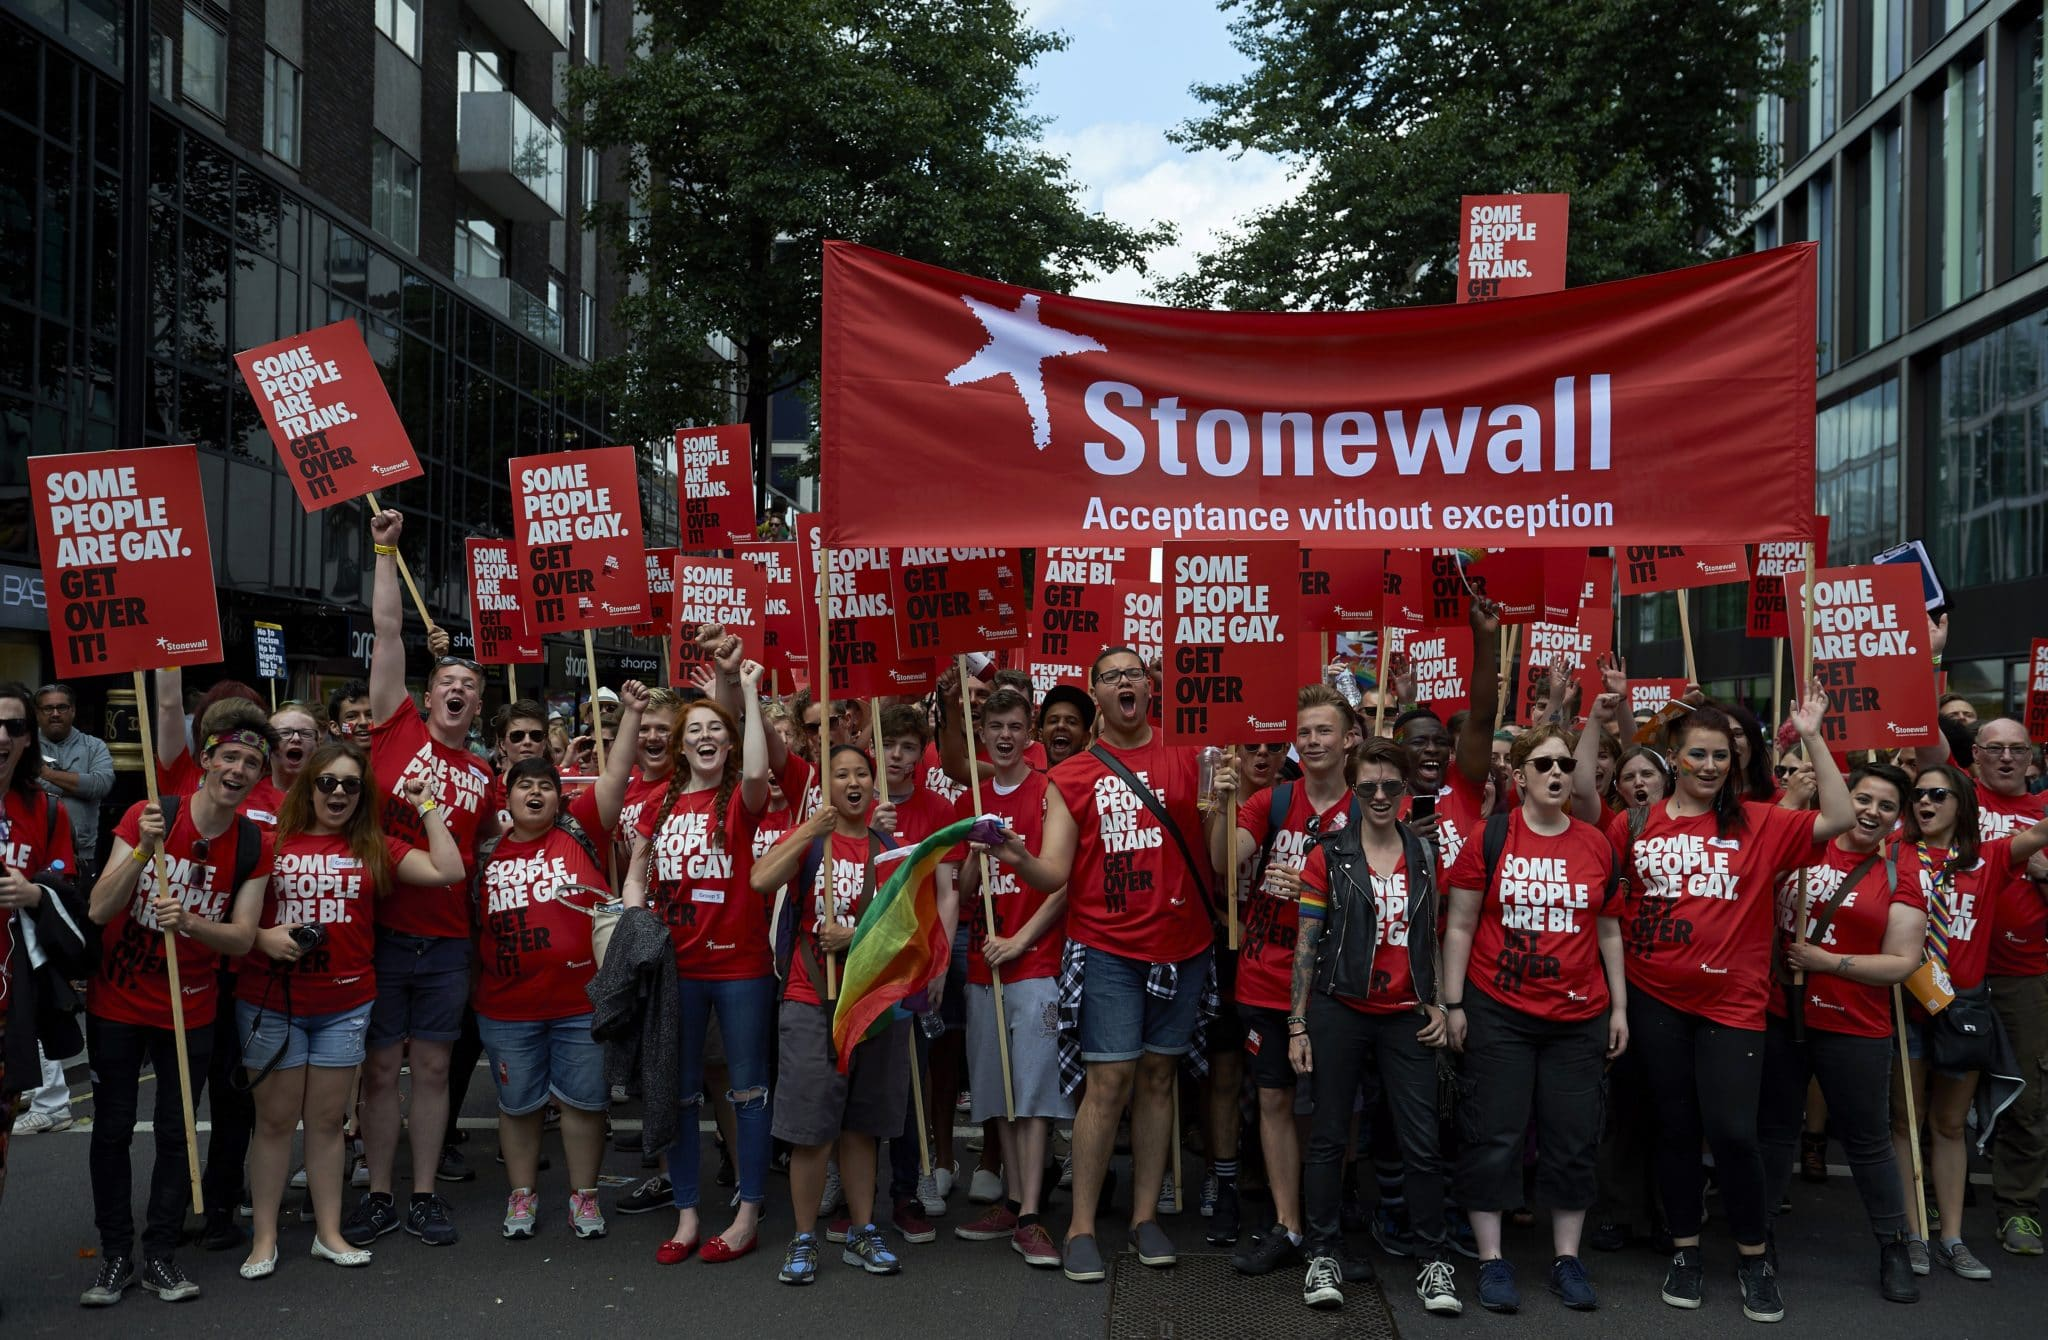 Politicians and senior LGBT+ figures stand with Stonewall in wake of BBC attack